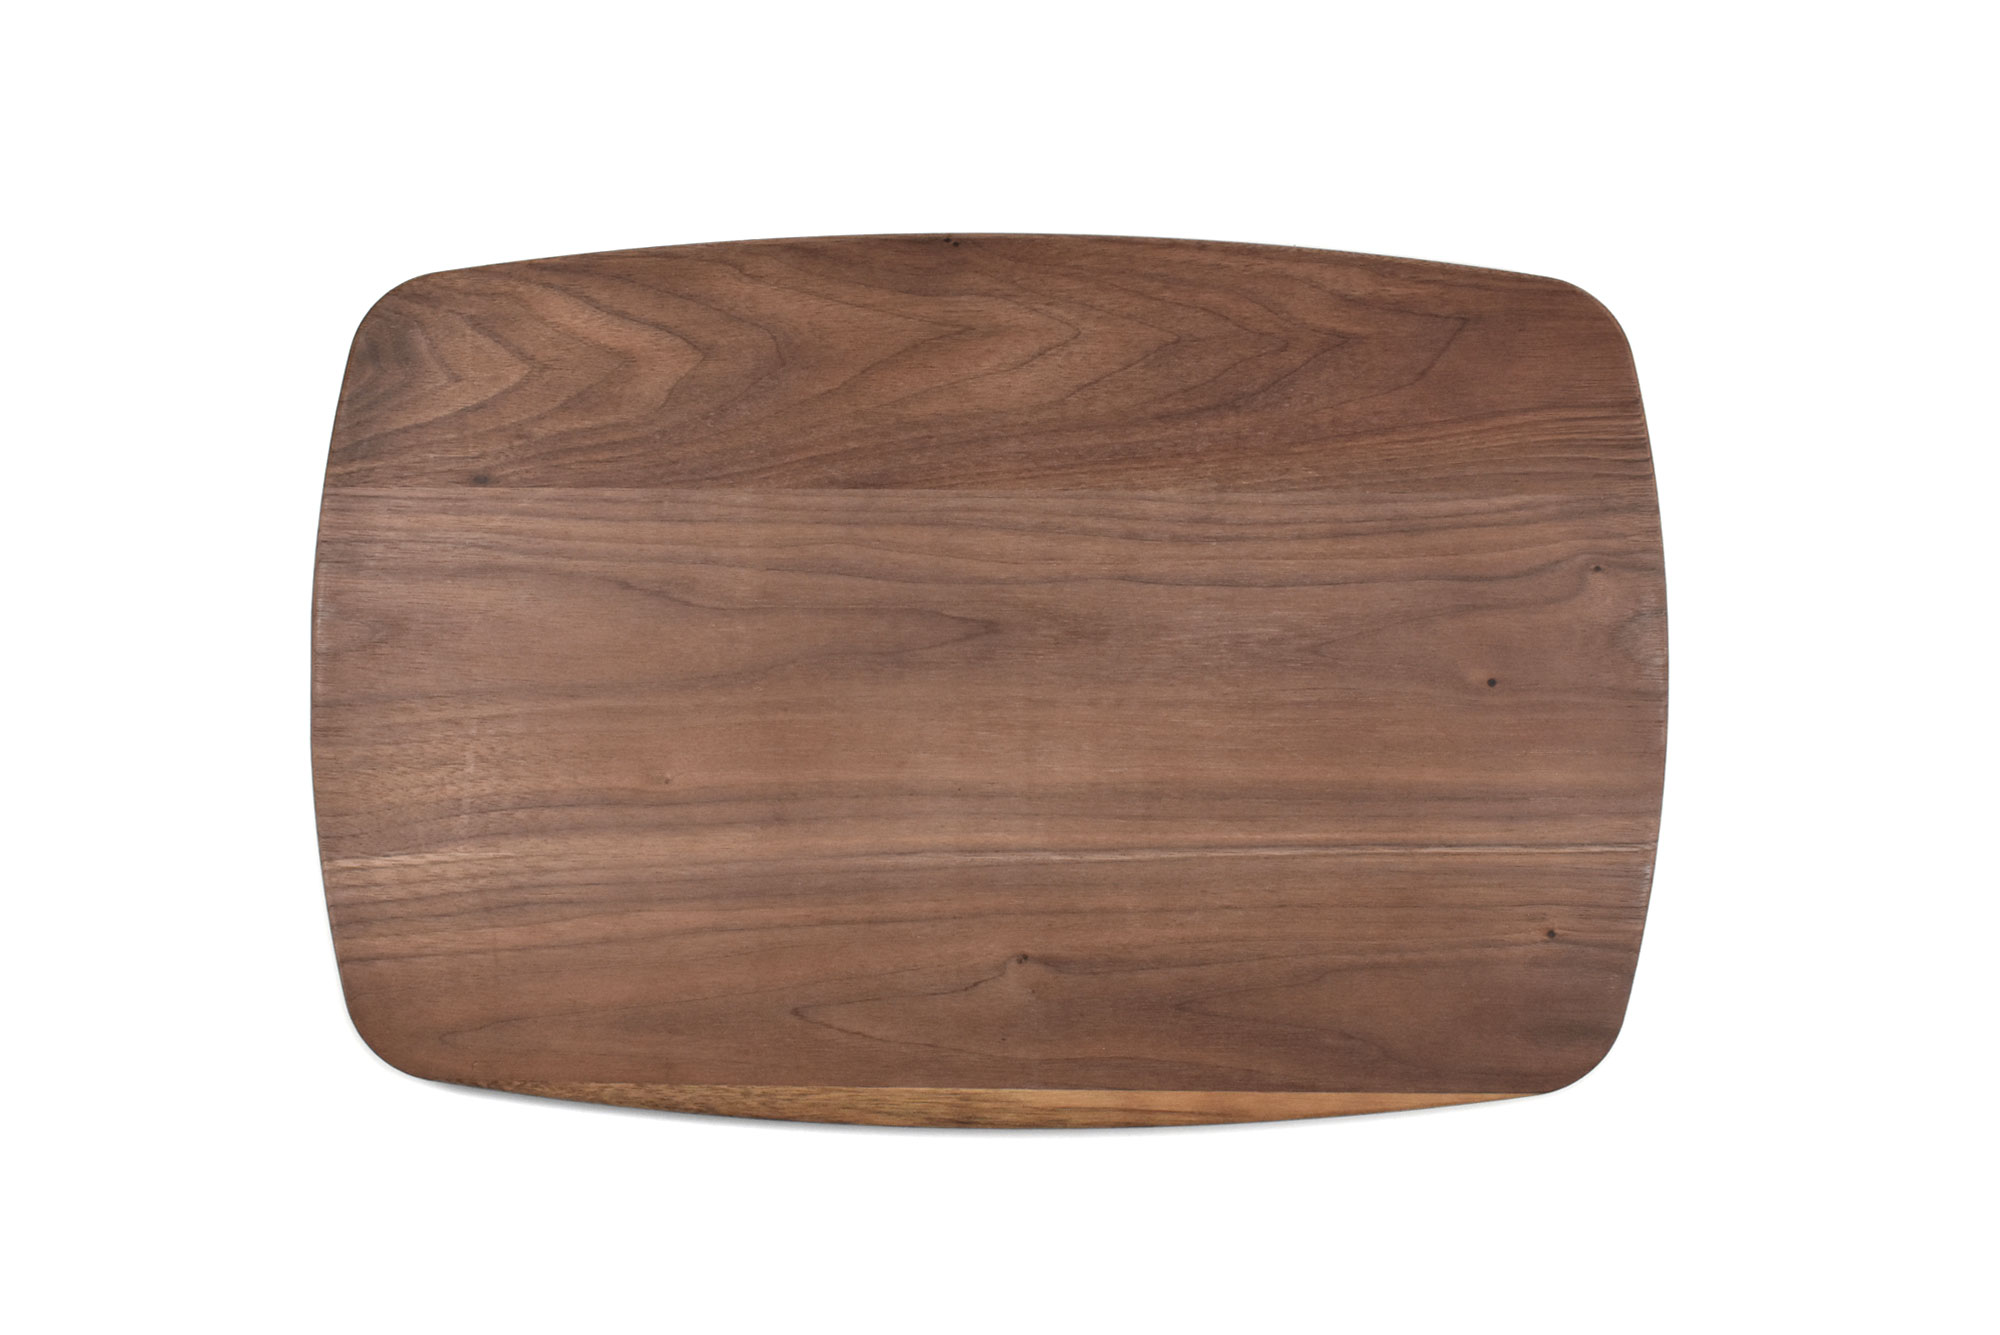 Walnut large rectangular curved cutting board with rounded corners